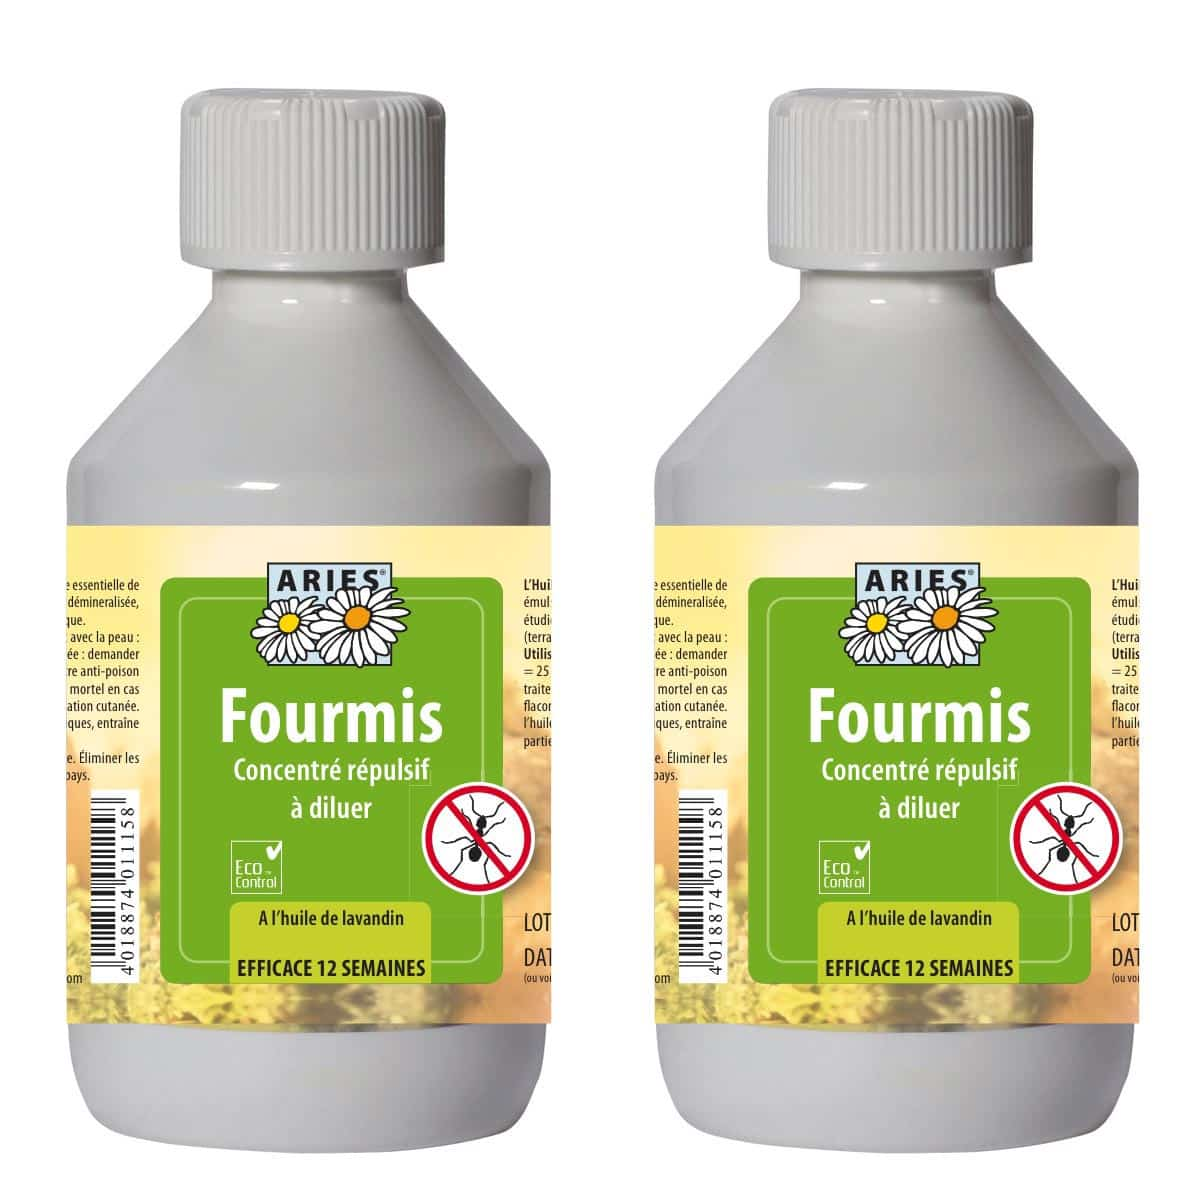 produit anti fourmis maison finest insecticide liquide anti fourmis phobi fourmis with produit. Black Bedroom Furniture Sets. Home Design Ideas